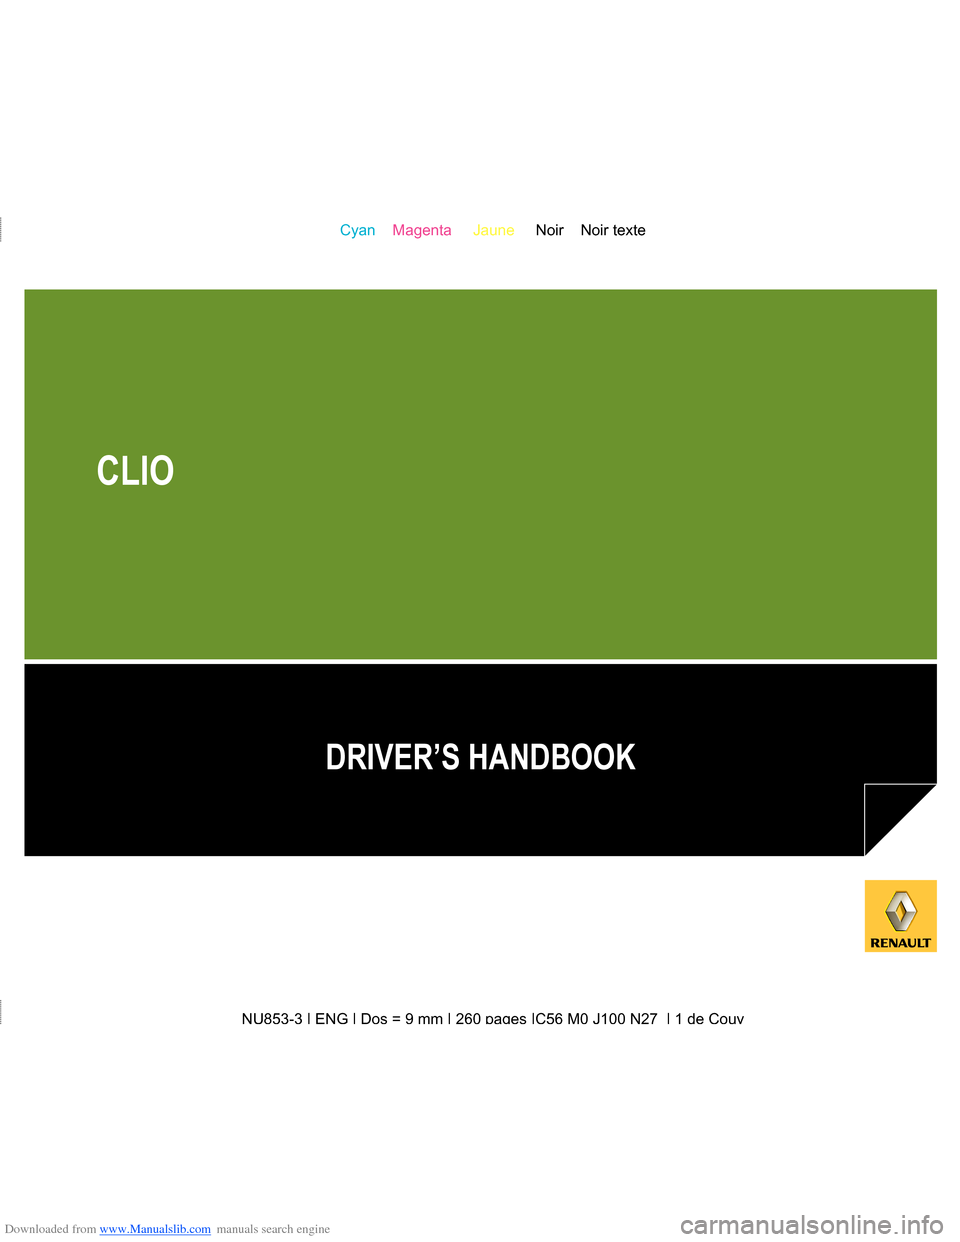 RENAULT CLIO 2009 X85 / 3.G Owners Manual Downloaded from www.Manualslib.com manuals search engine NU853-3 | ENG | Dos = 9 mm | 260 pages |C56 M0 J100 N27  | 1 de Couv Cyan    Magenta     Jaune     Noir    Noir texte NU853-3 | ENG | Dos = 9 m